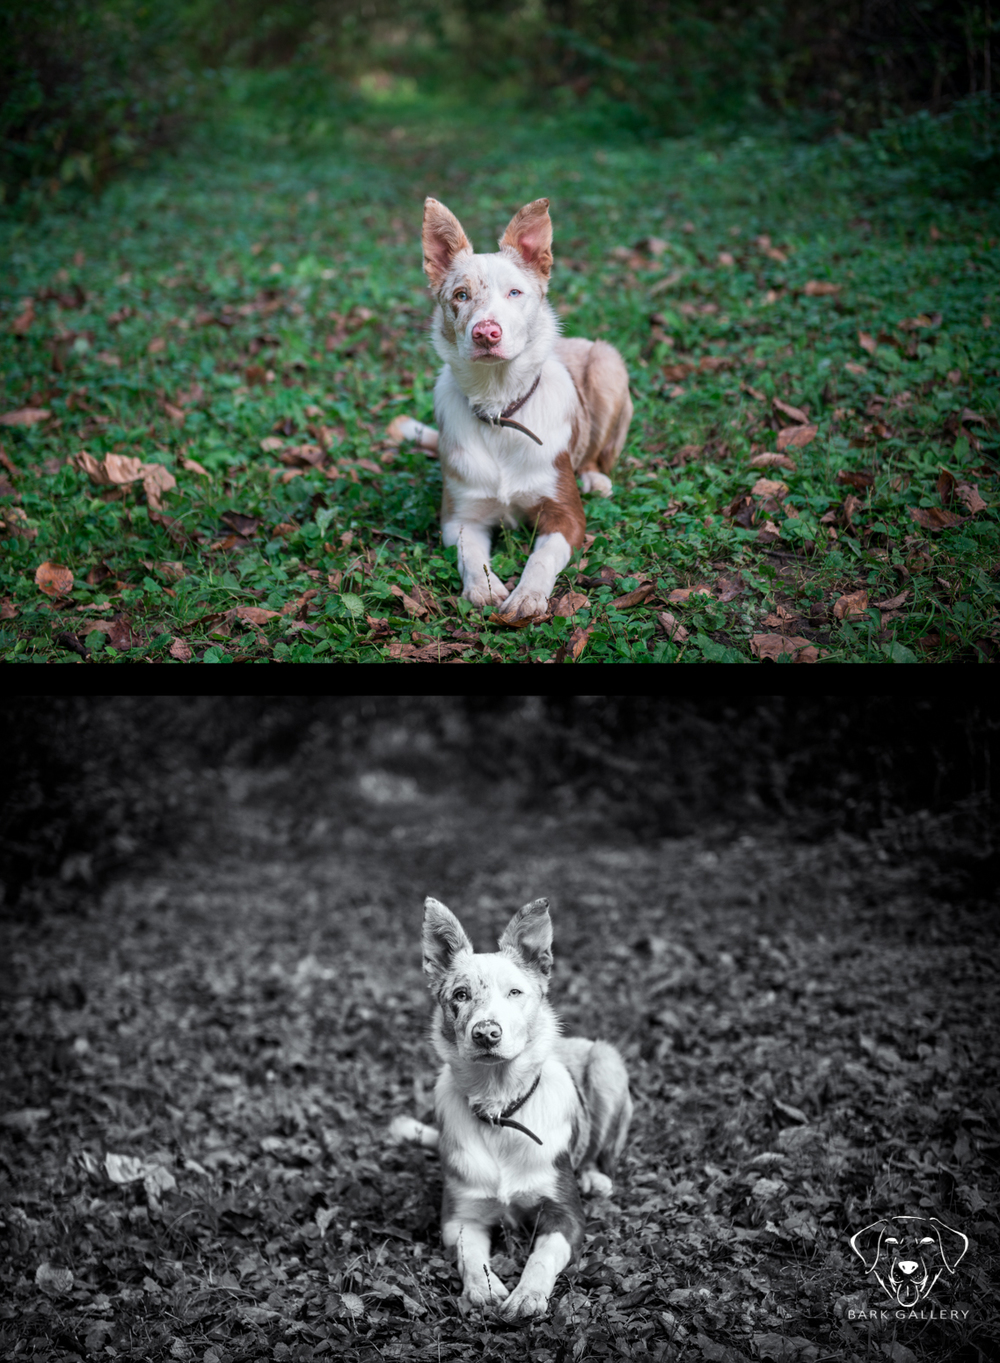 comparison-black-white-dog